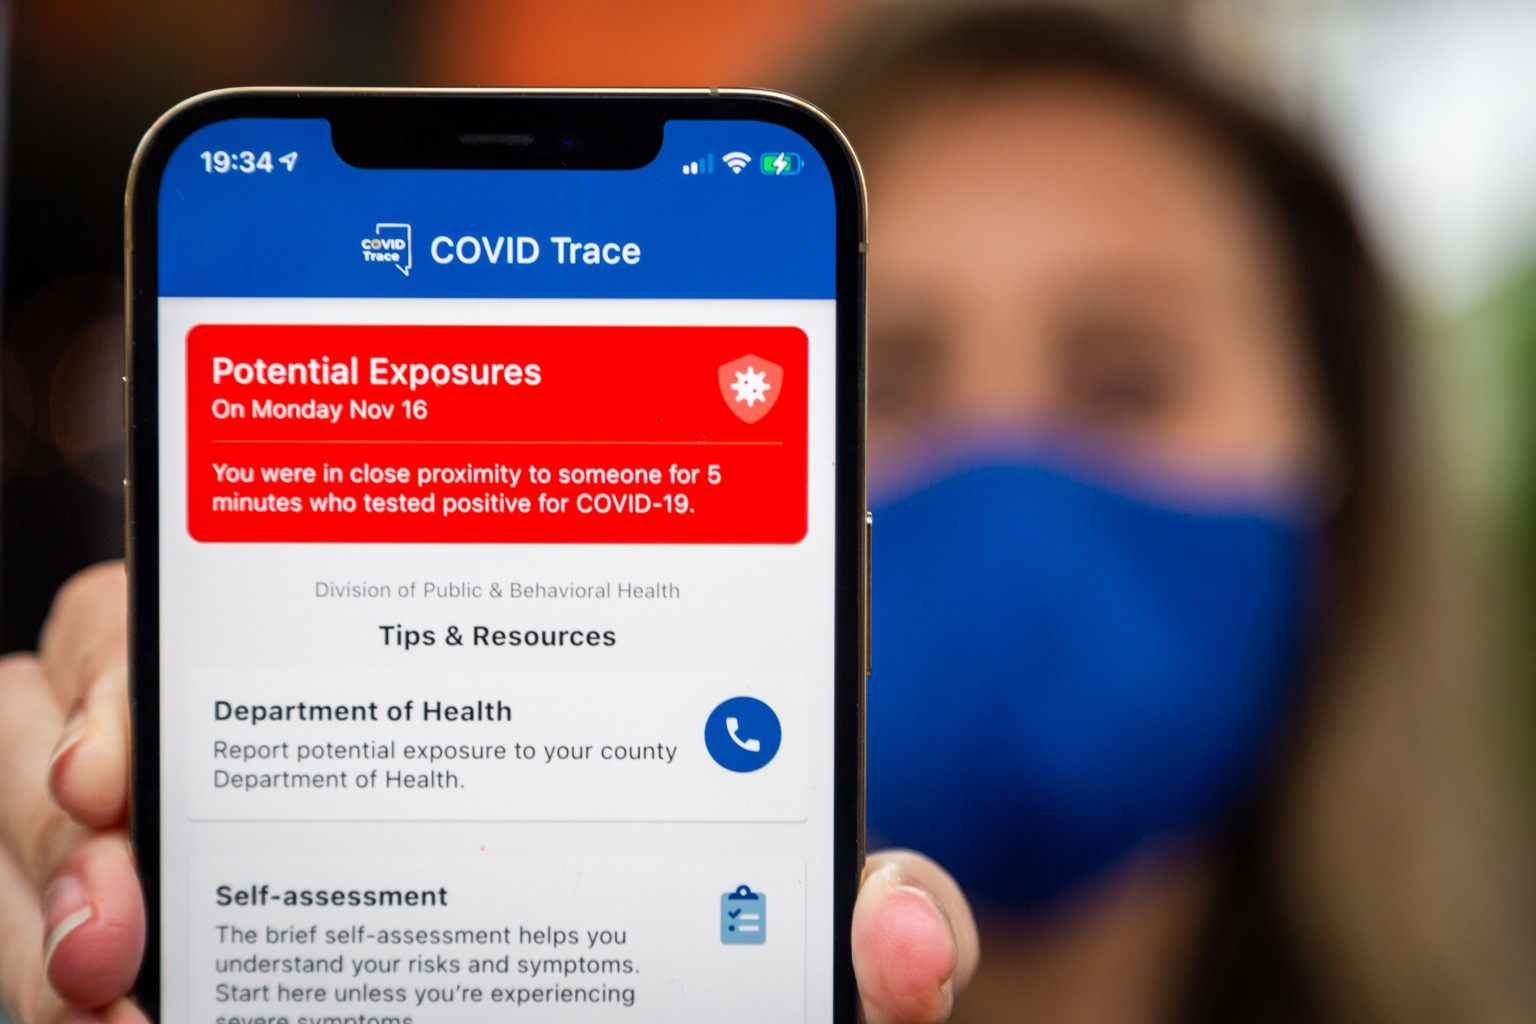 Your phone can send you an alert if you were near someone who has coronavirus